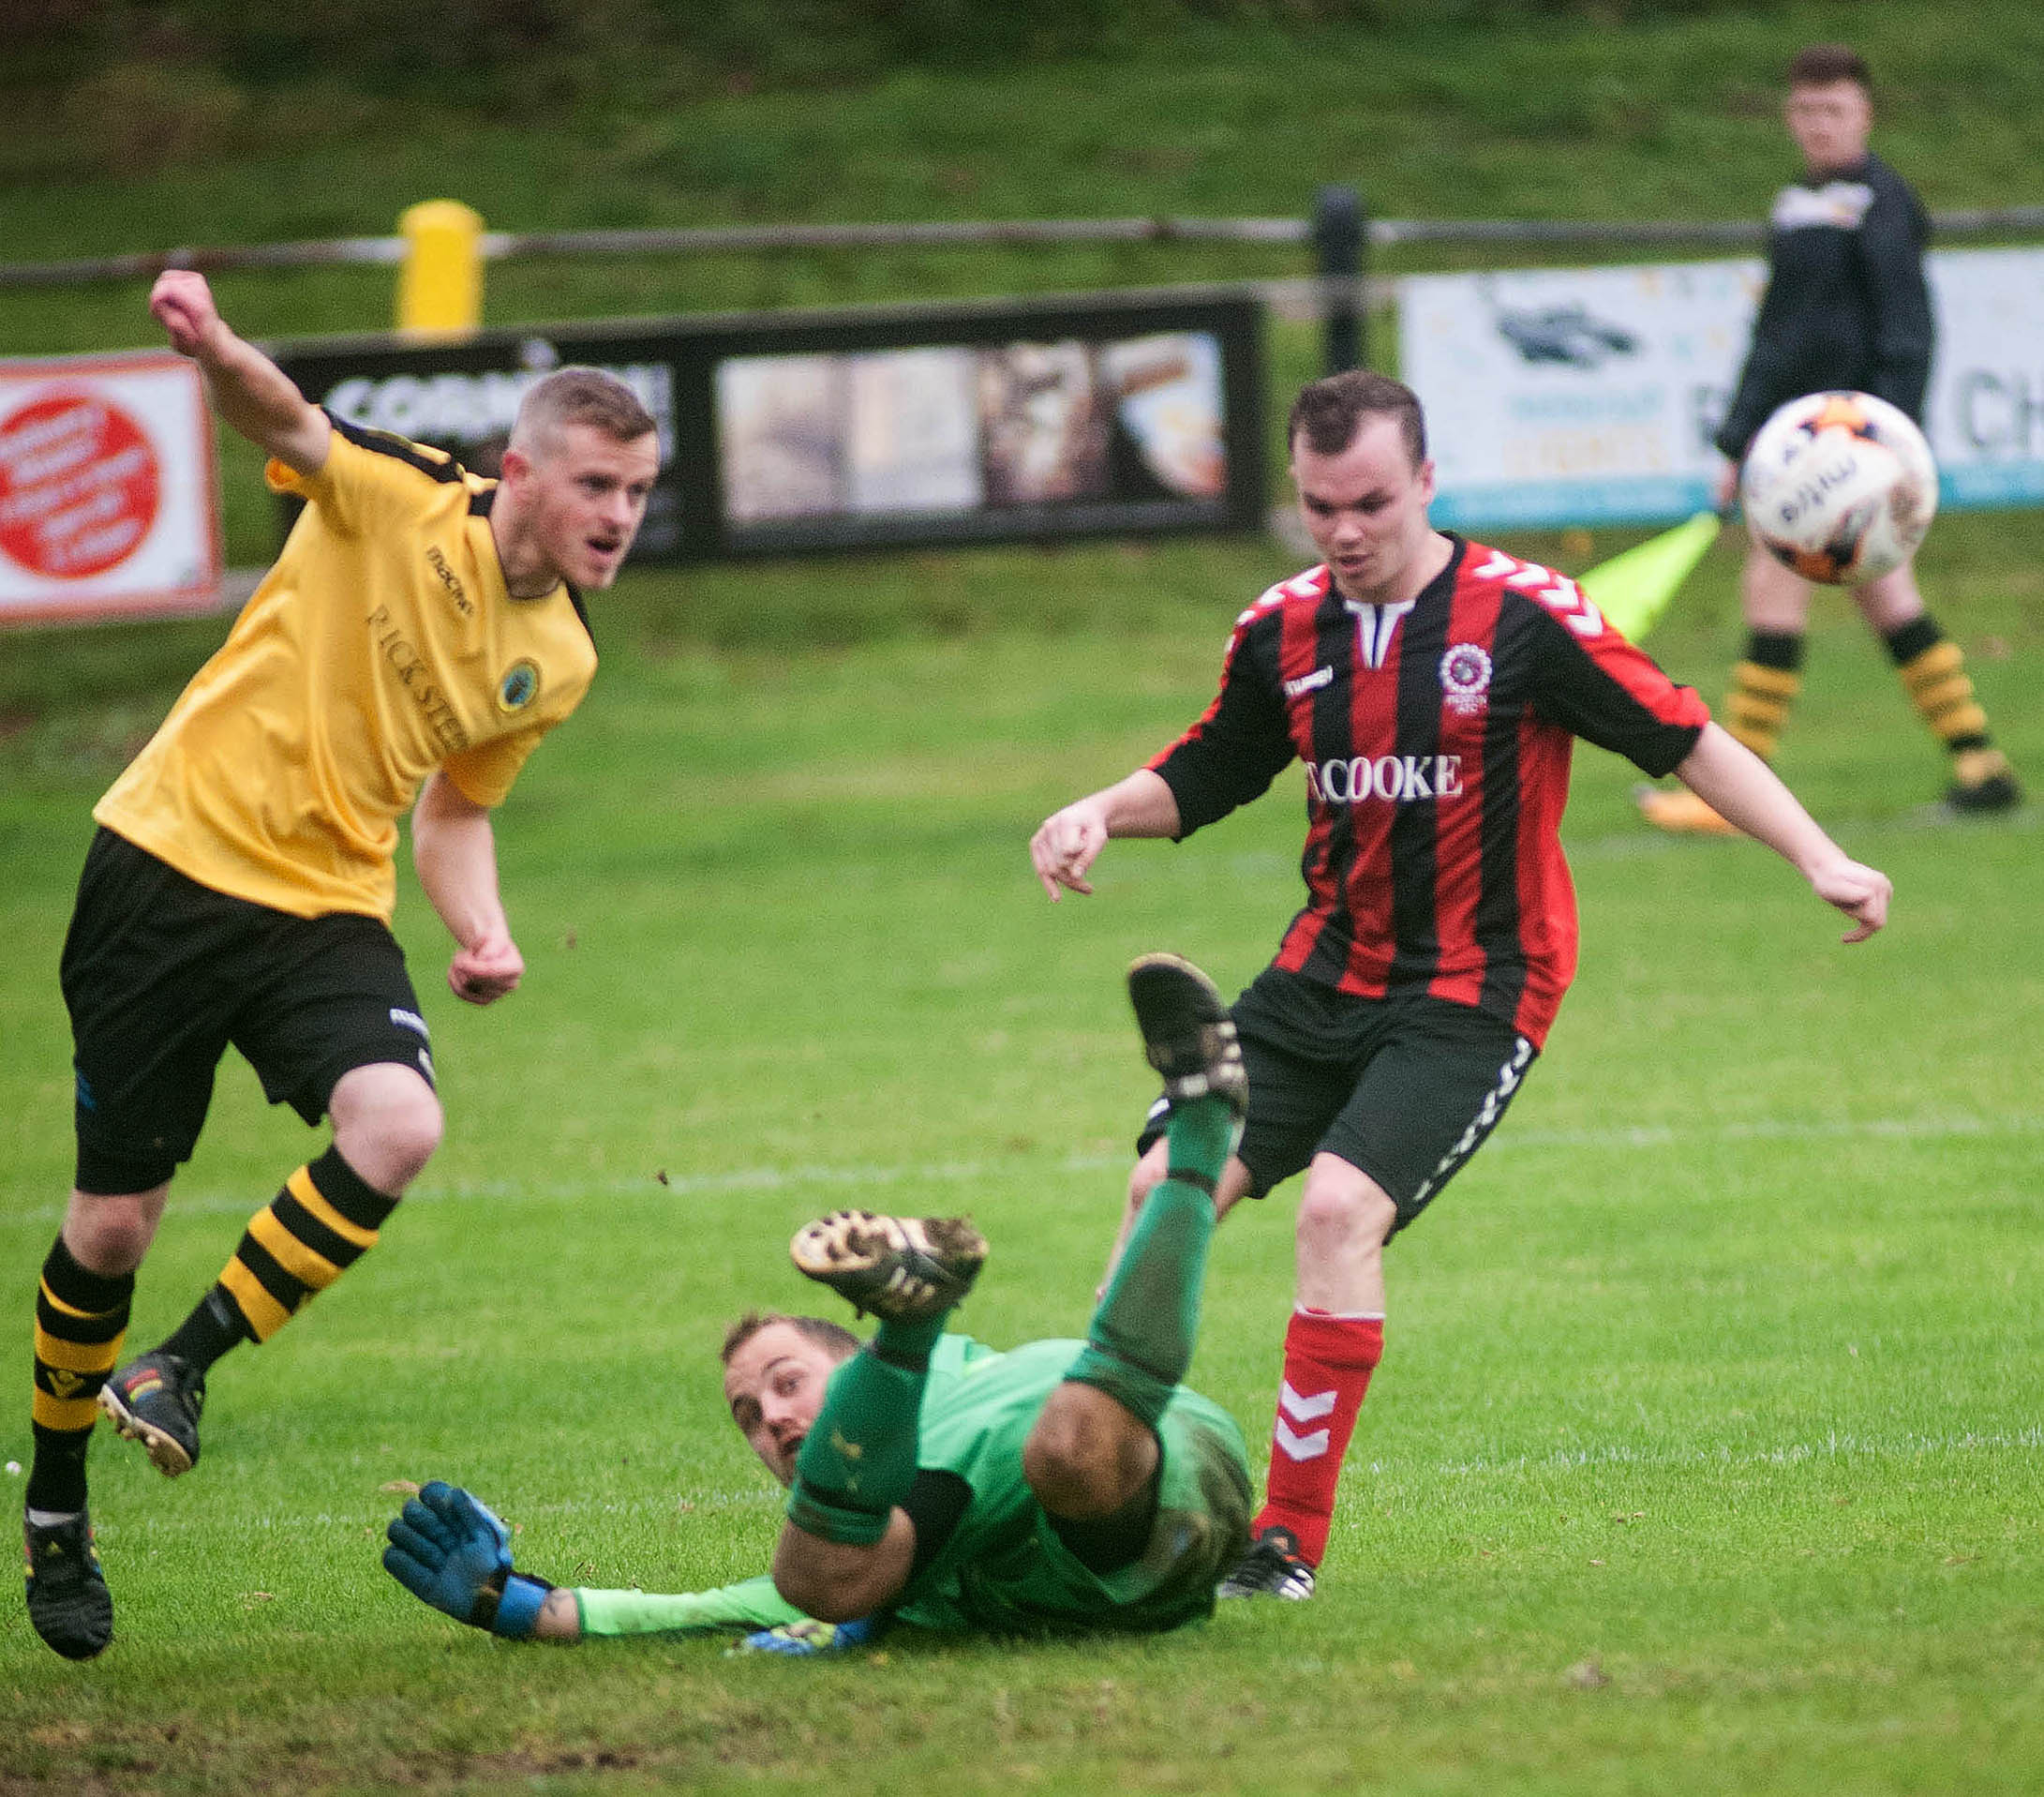 Porthleven's goalkeeper Scott Eastwood realises that the ball has been kept away from the net. Picture by Colin Higgs